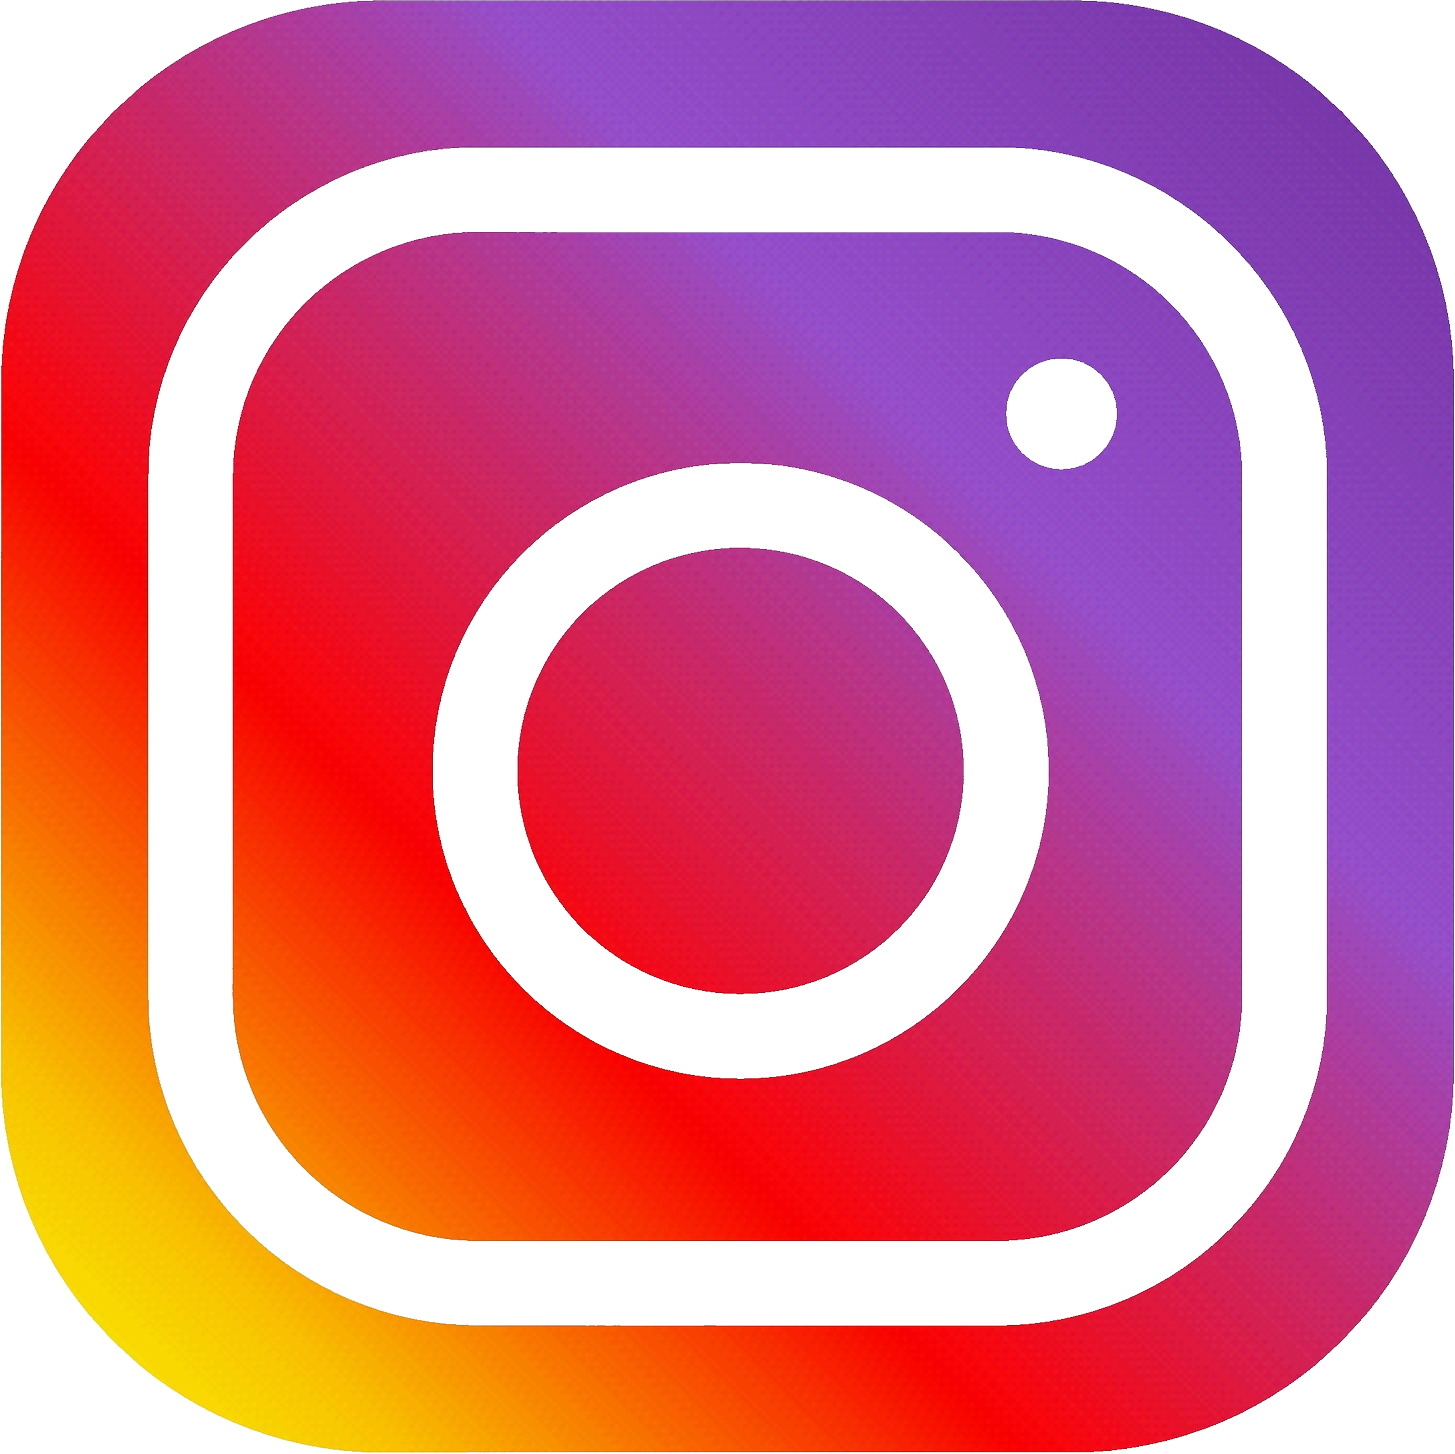 2019 instagram icon